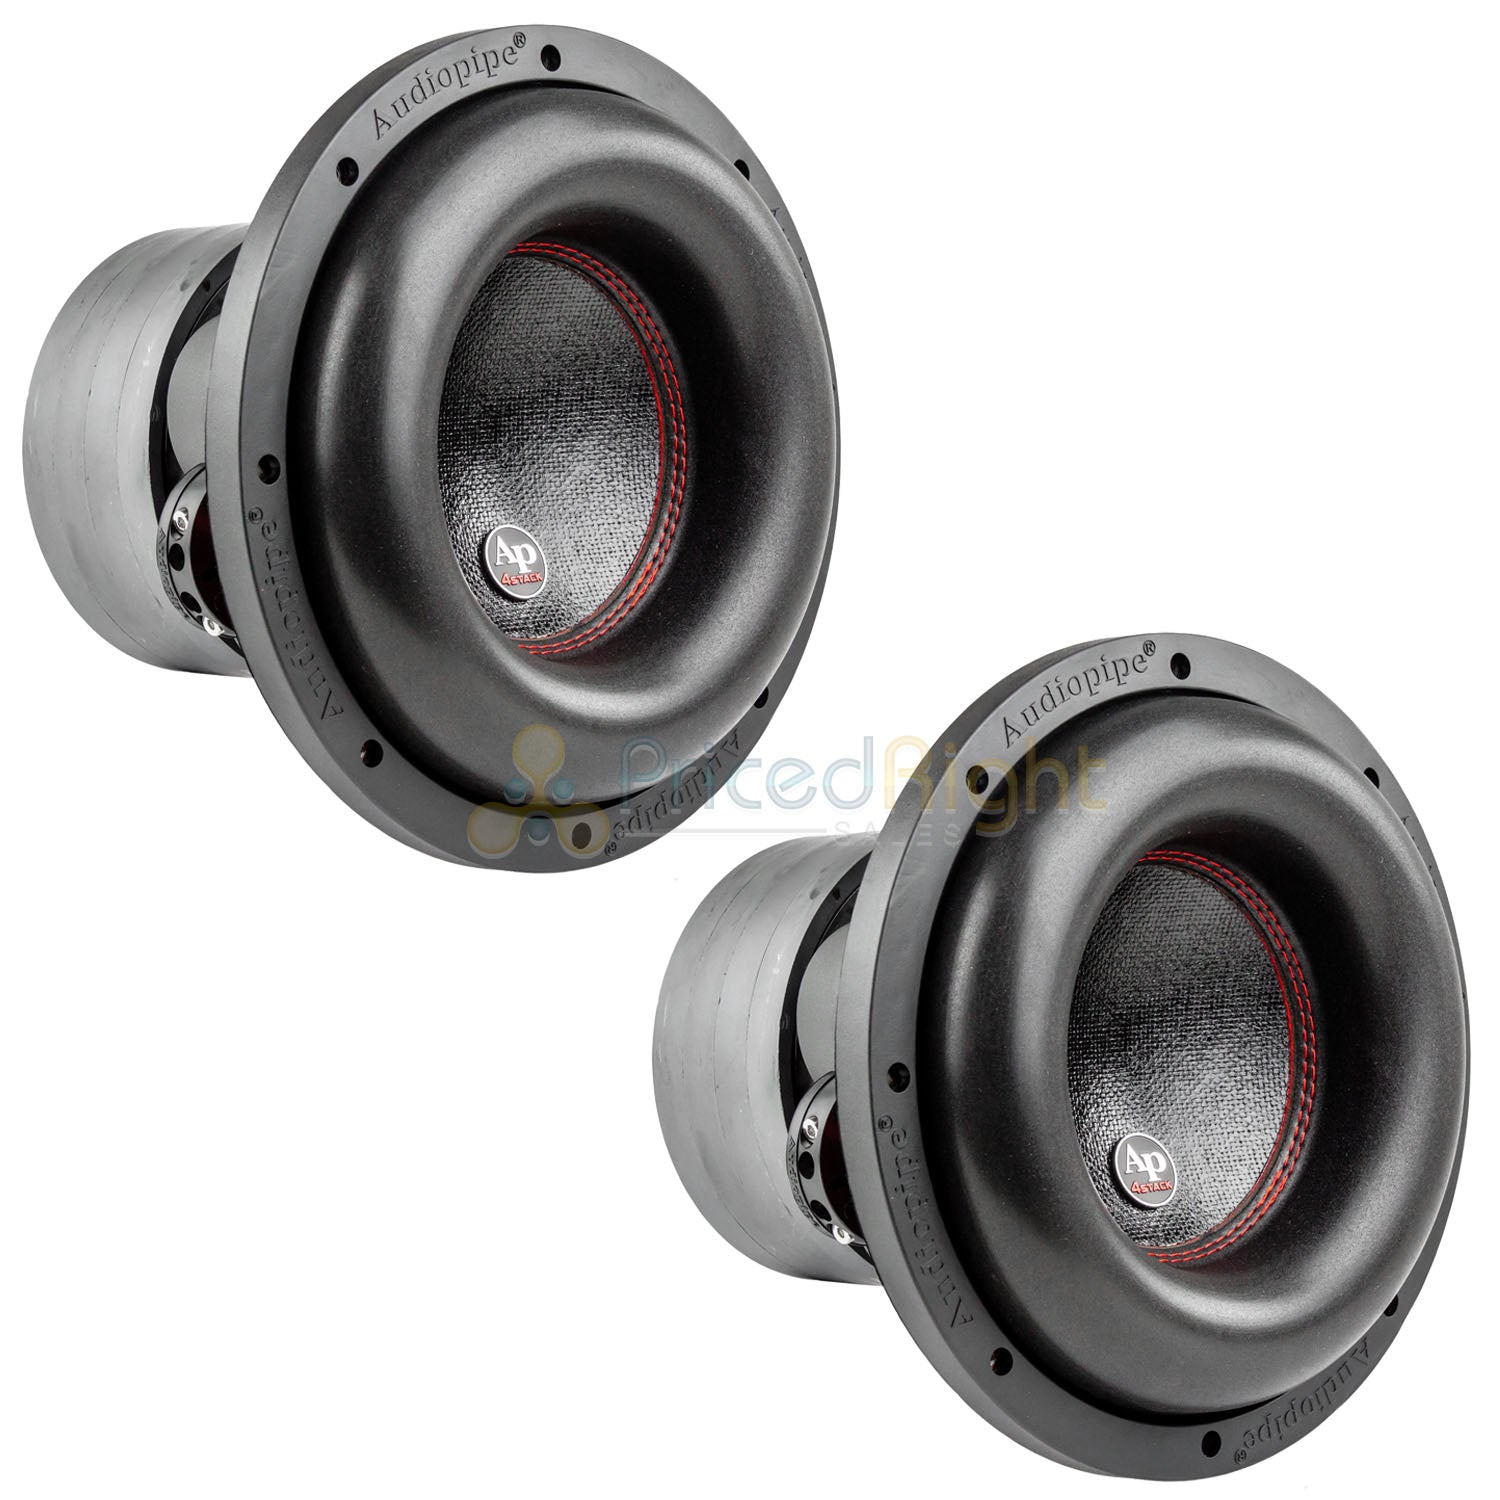 10 Subwoofer Dual 4 Ohm 900 Watts RMS Car Audio Sub Audiopipe TXX-BDC4-10